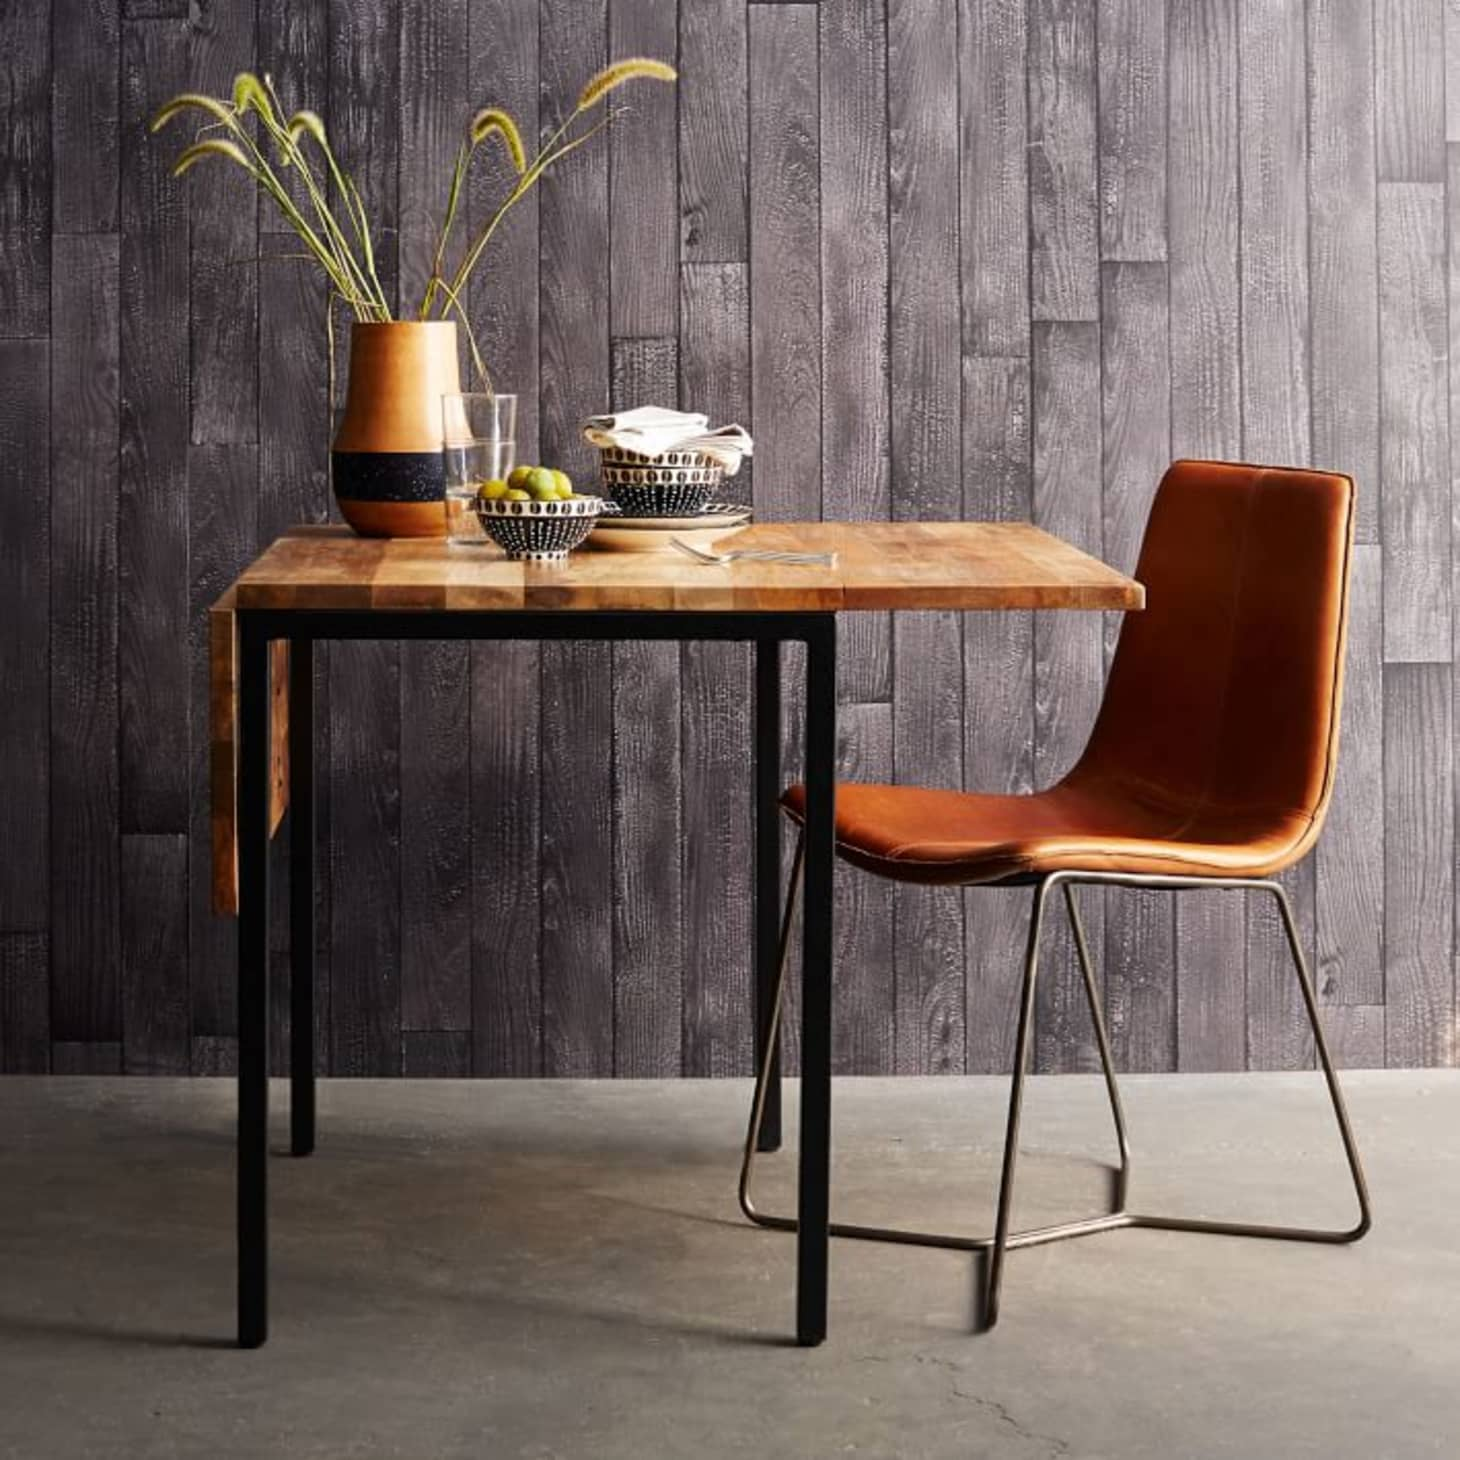 Apartment Shopping: Where To Shop For Small-Scale Furniture